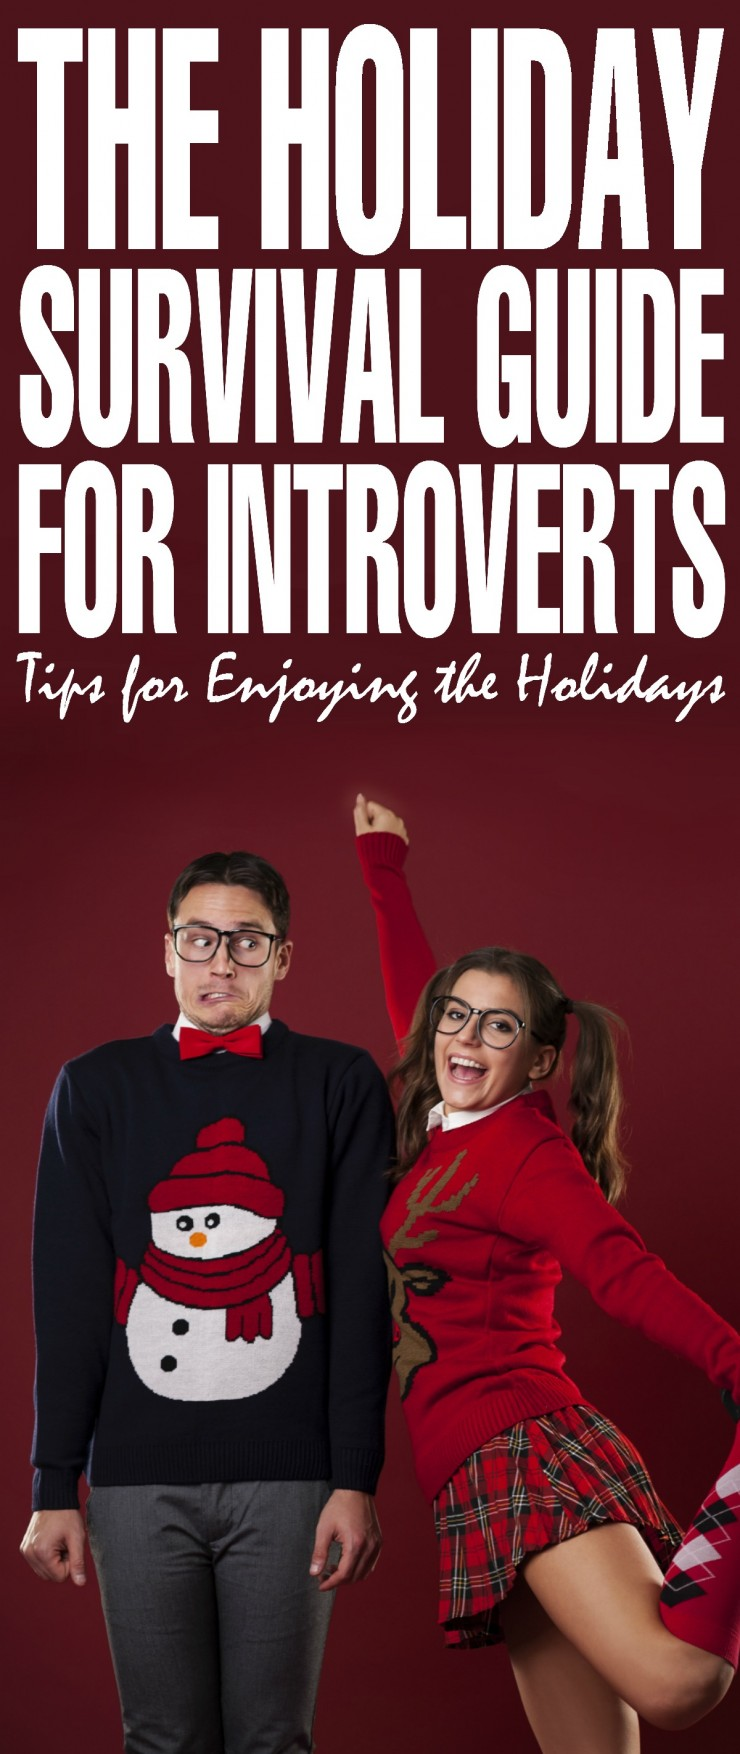 Unfortunately, if you're an introvert, the holiday season can be filled with stress due to all of the hustle and bustle. If this sounds like you this Holiday survival guide for introverts can help you survive the holiday season.